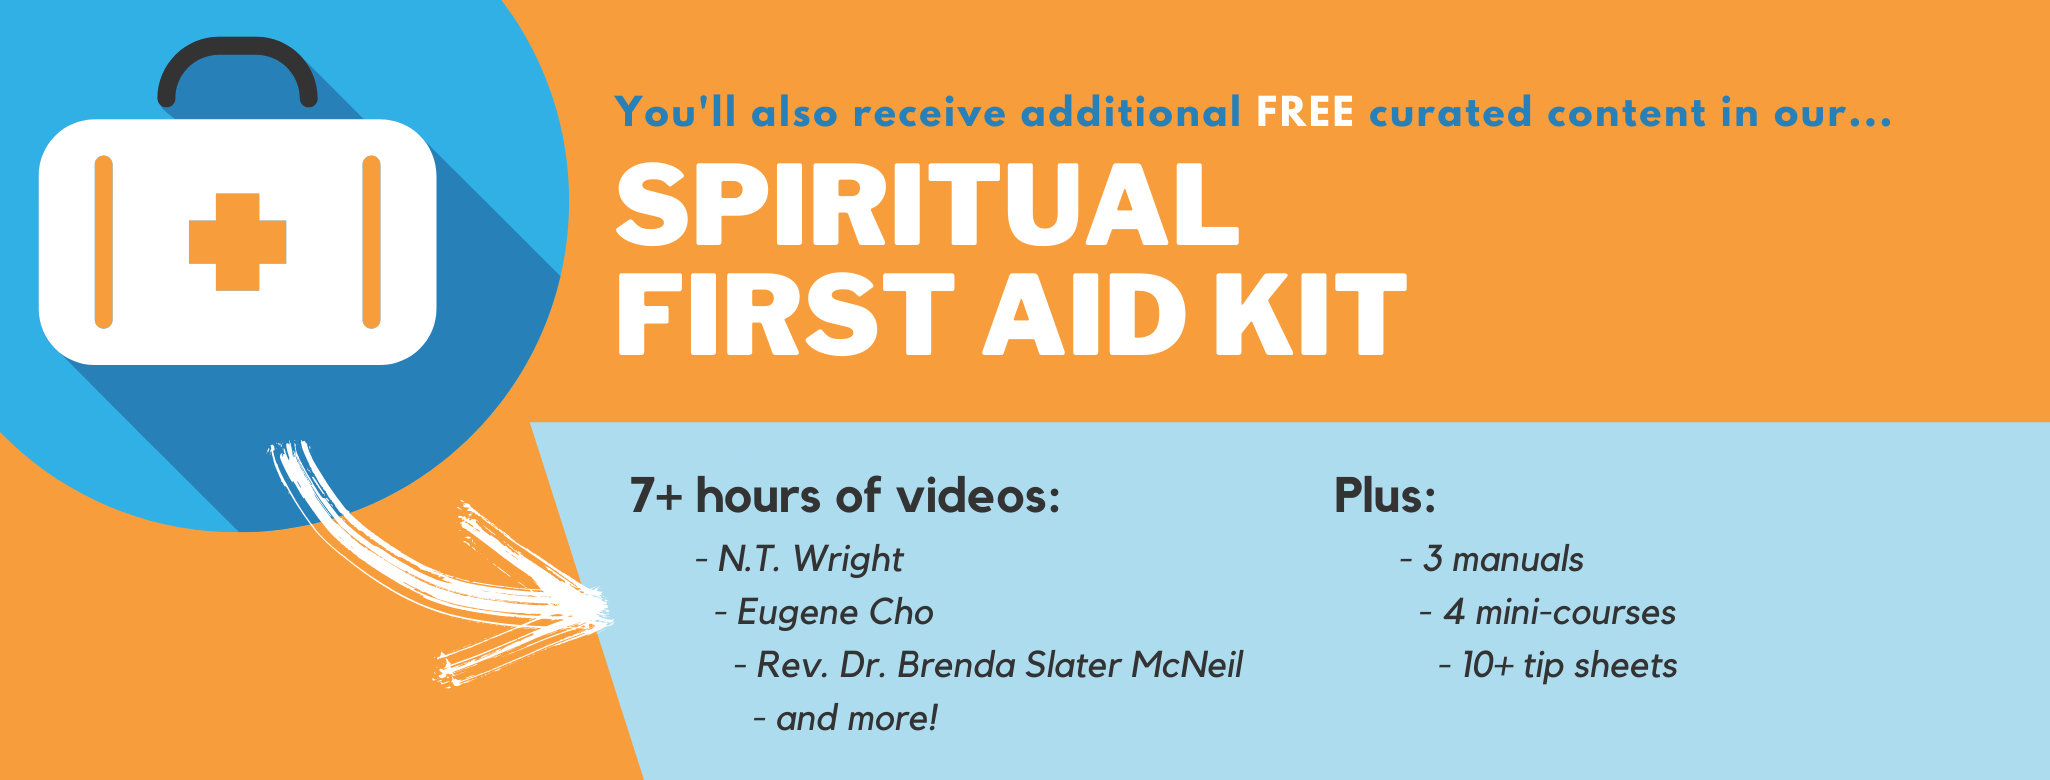 Receive free curated spiritual first aid kit.